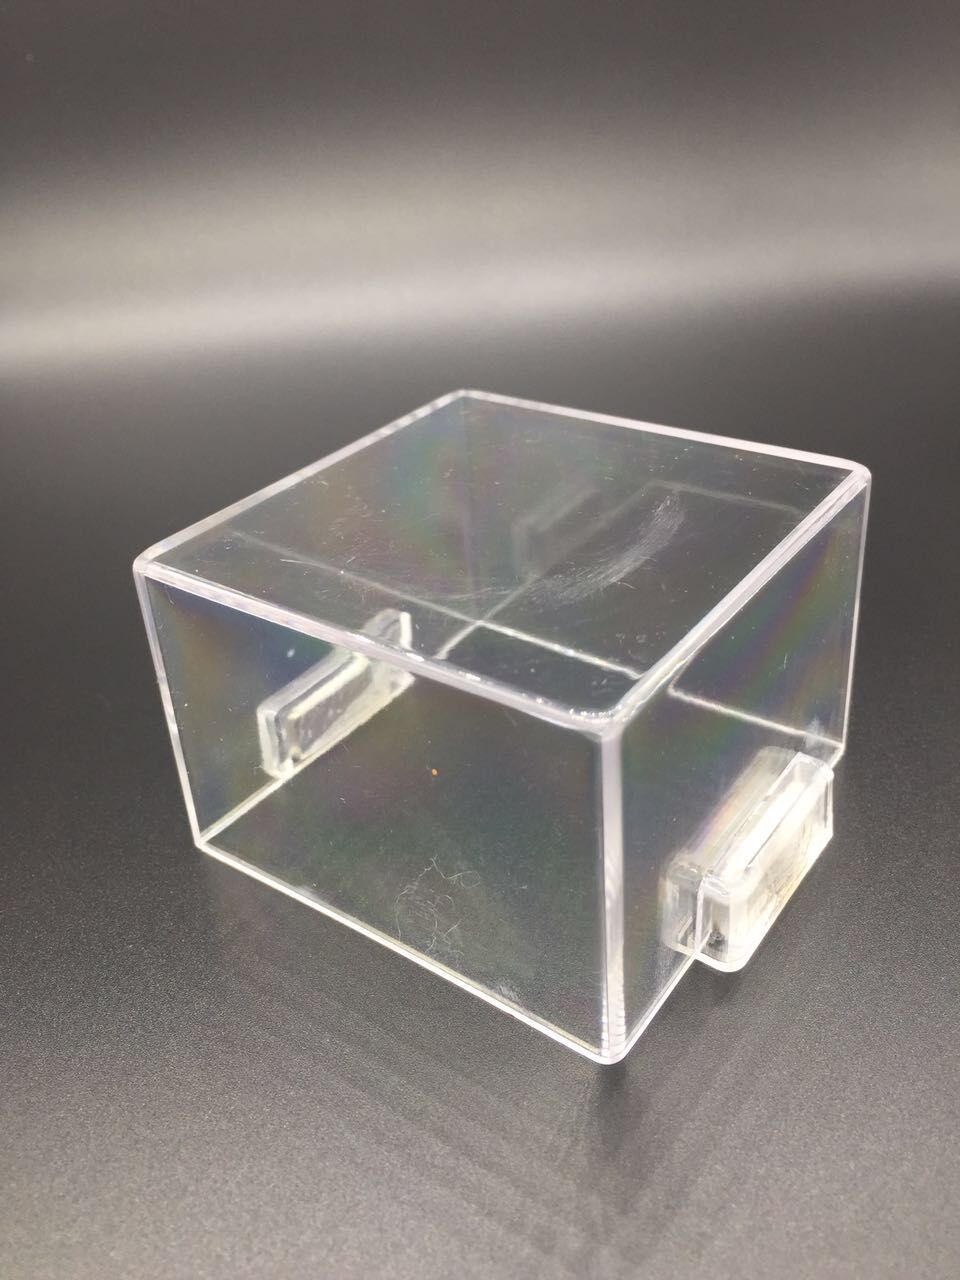 Magnetic button protective cover with magnet square transparent protection cover seat distribution cabinet special